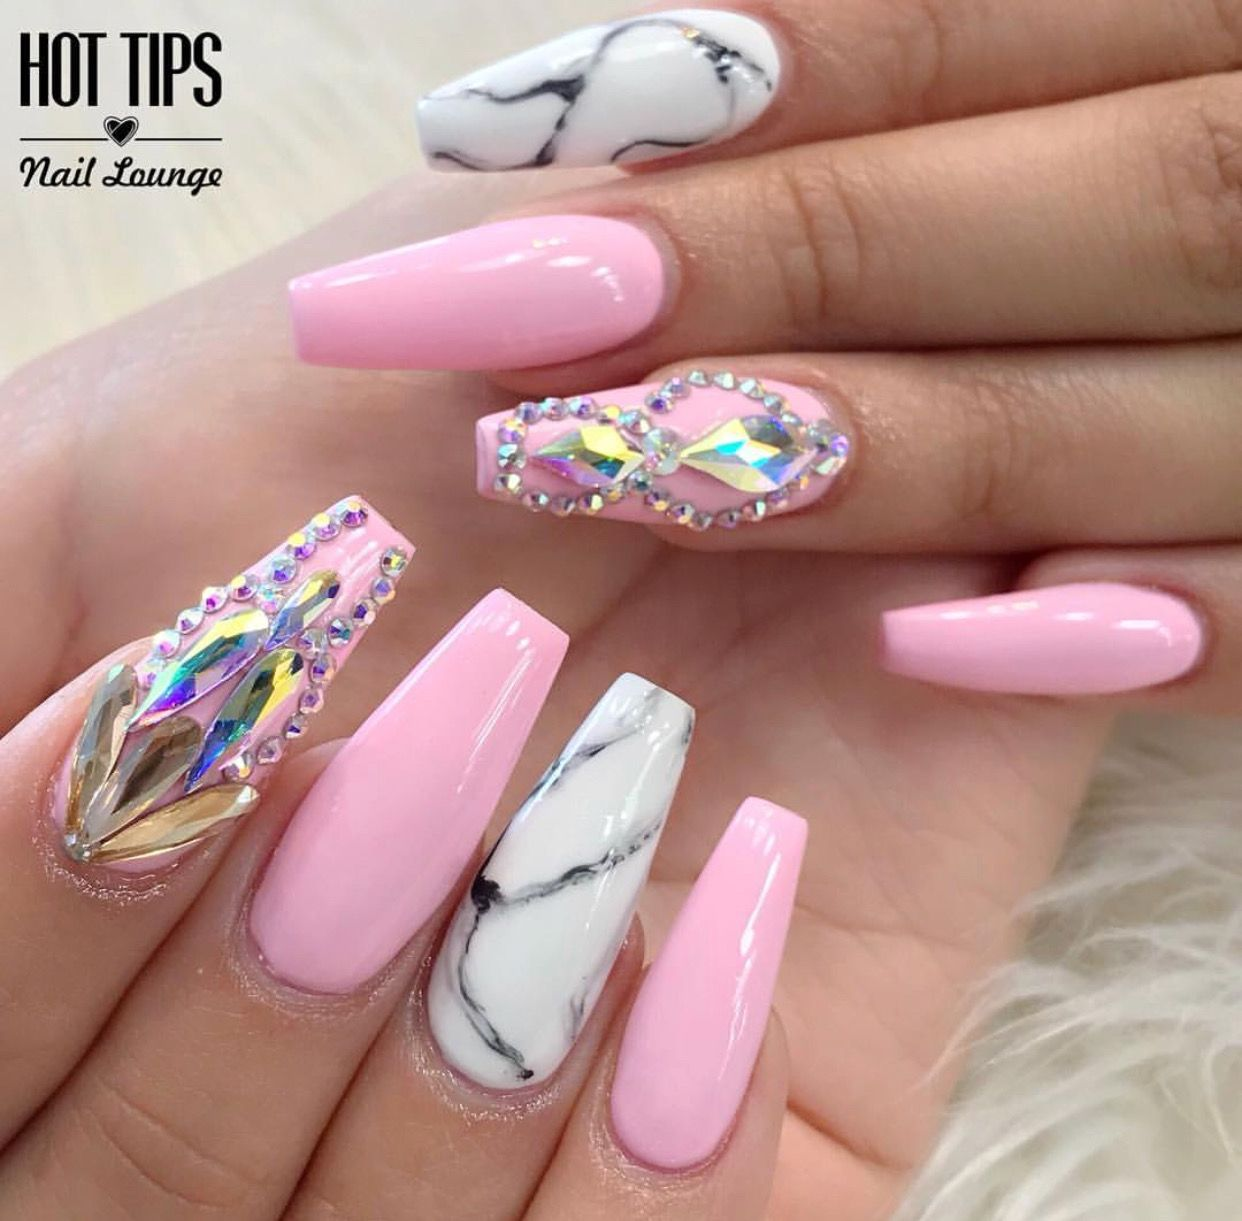 This Pink Nail Art With Rhinestones And Marble Accent Is So Pretty Nailart Trendy Nails Pink Acrylic Nails Pink Nail Art